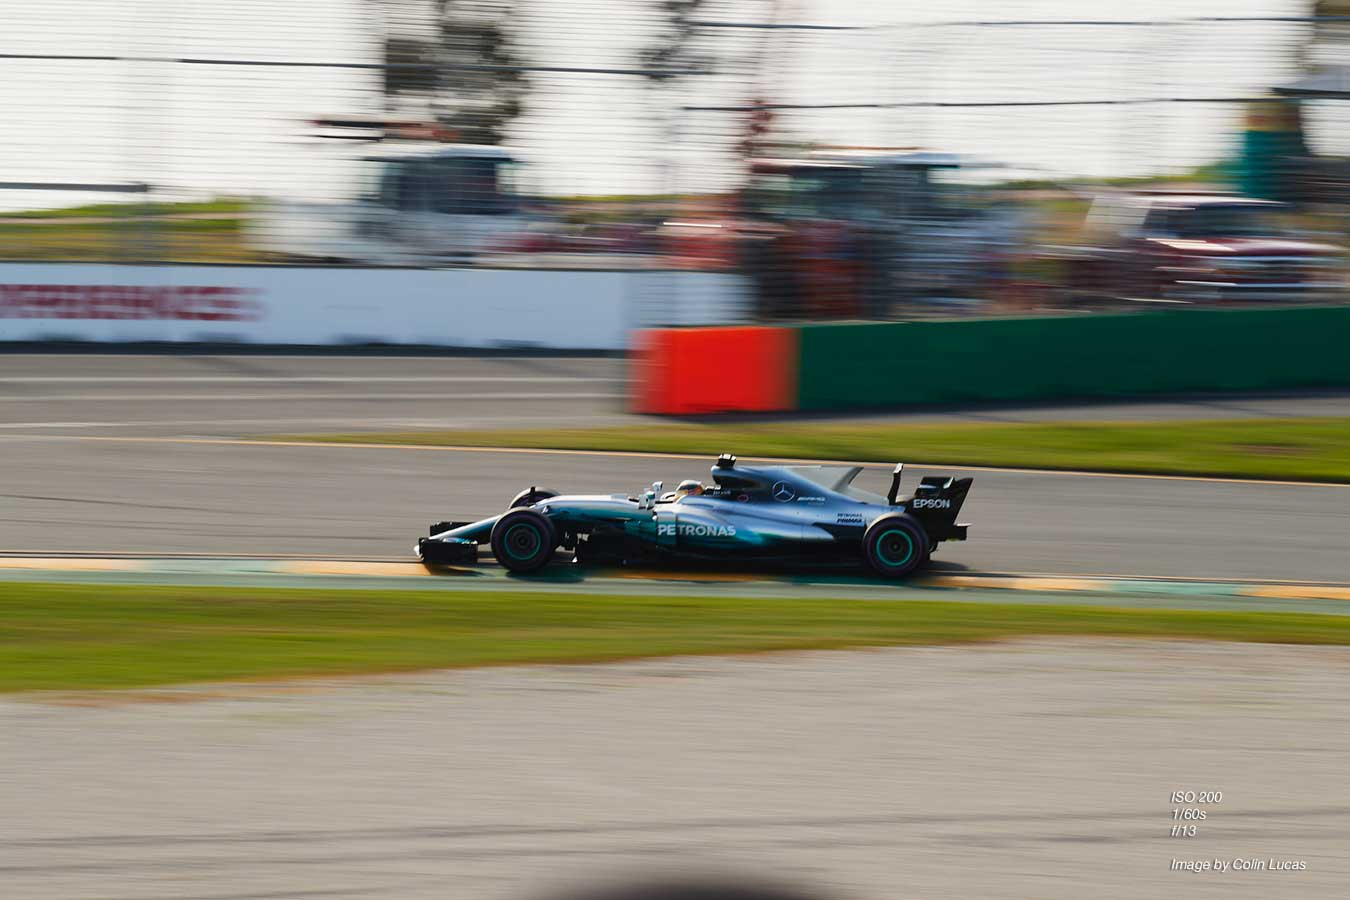 slow-shutter-speed-example-of-car-in-grand-prix